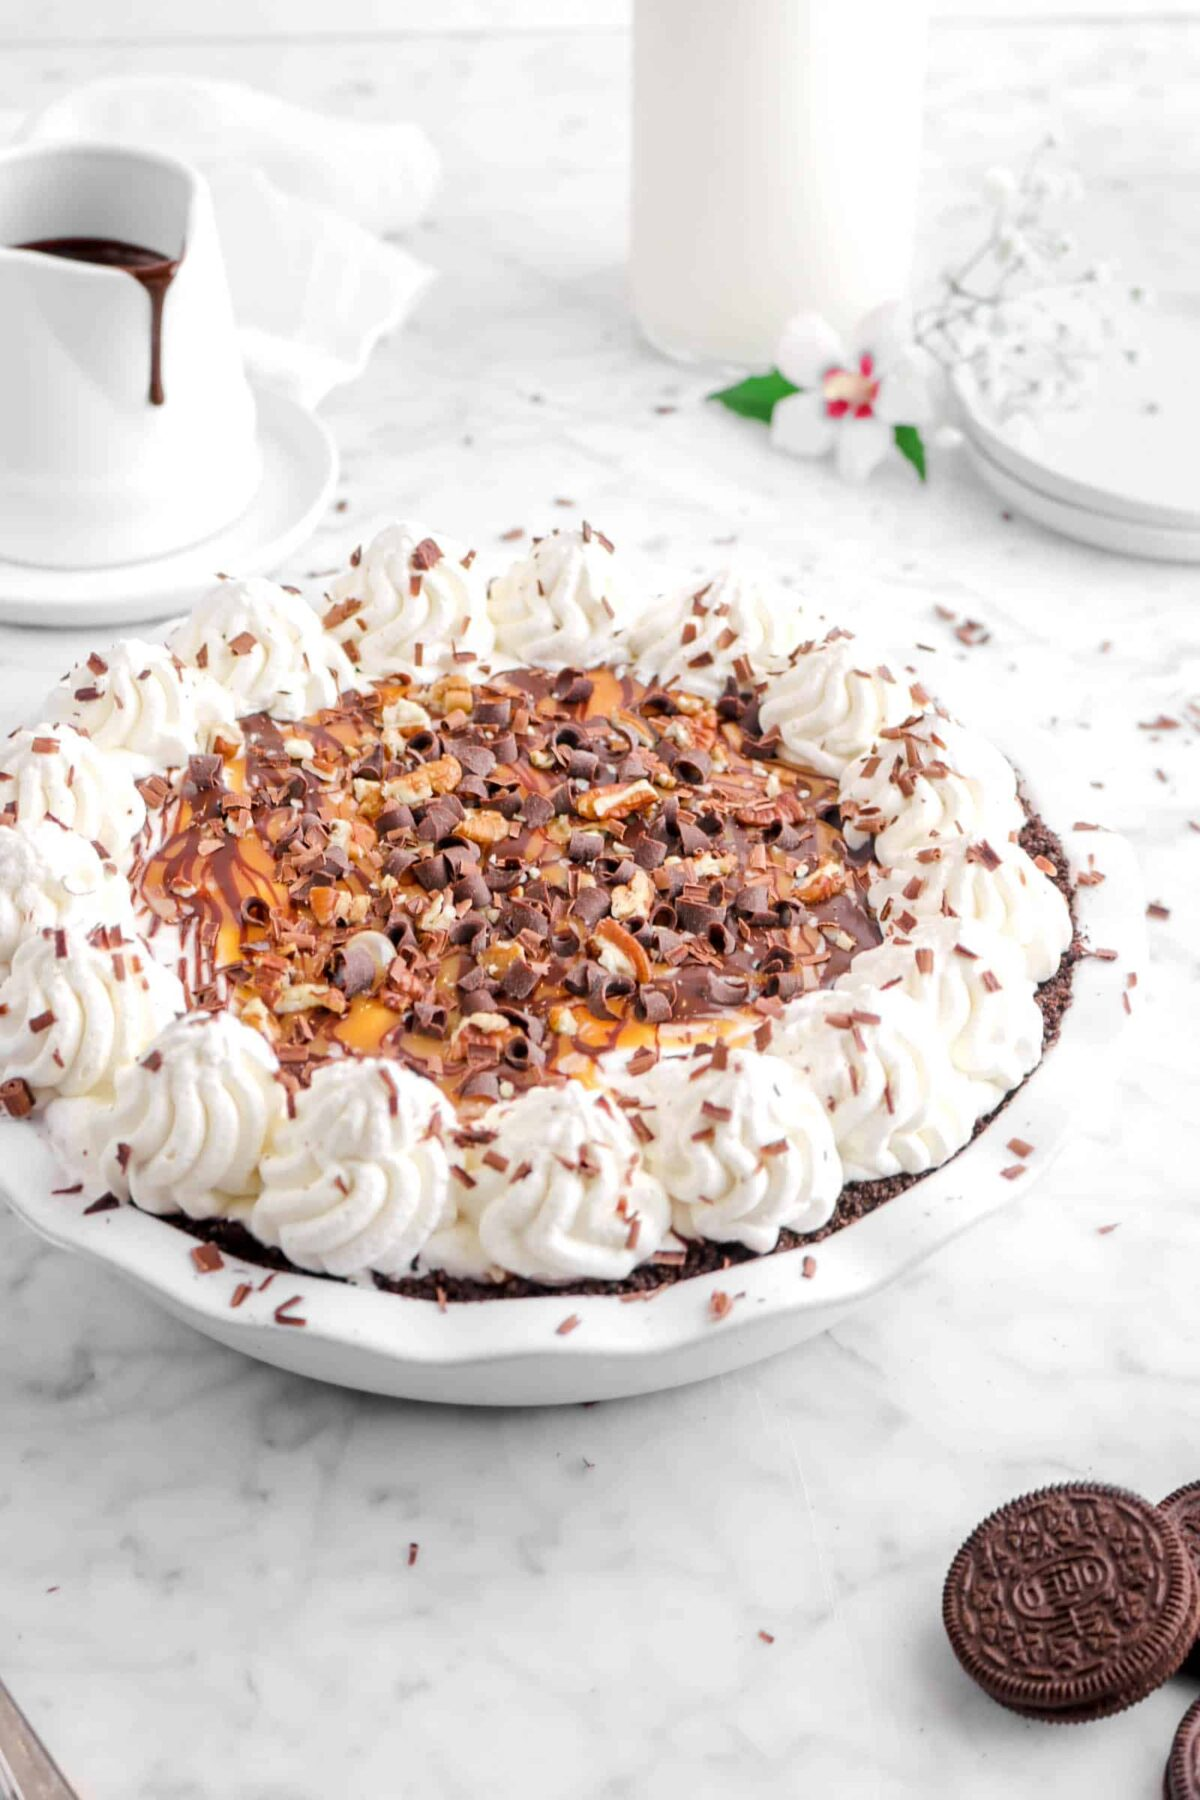 ice cream pie with flowers, glass of milk, and chocolate sauce